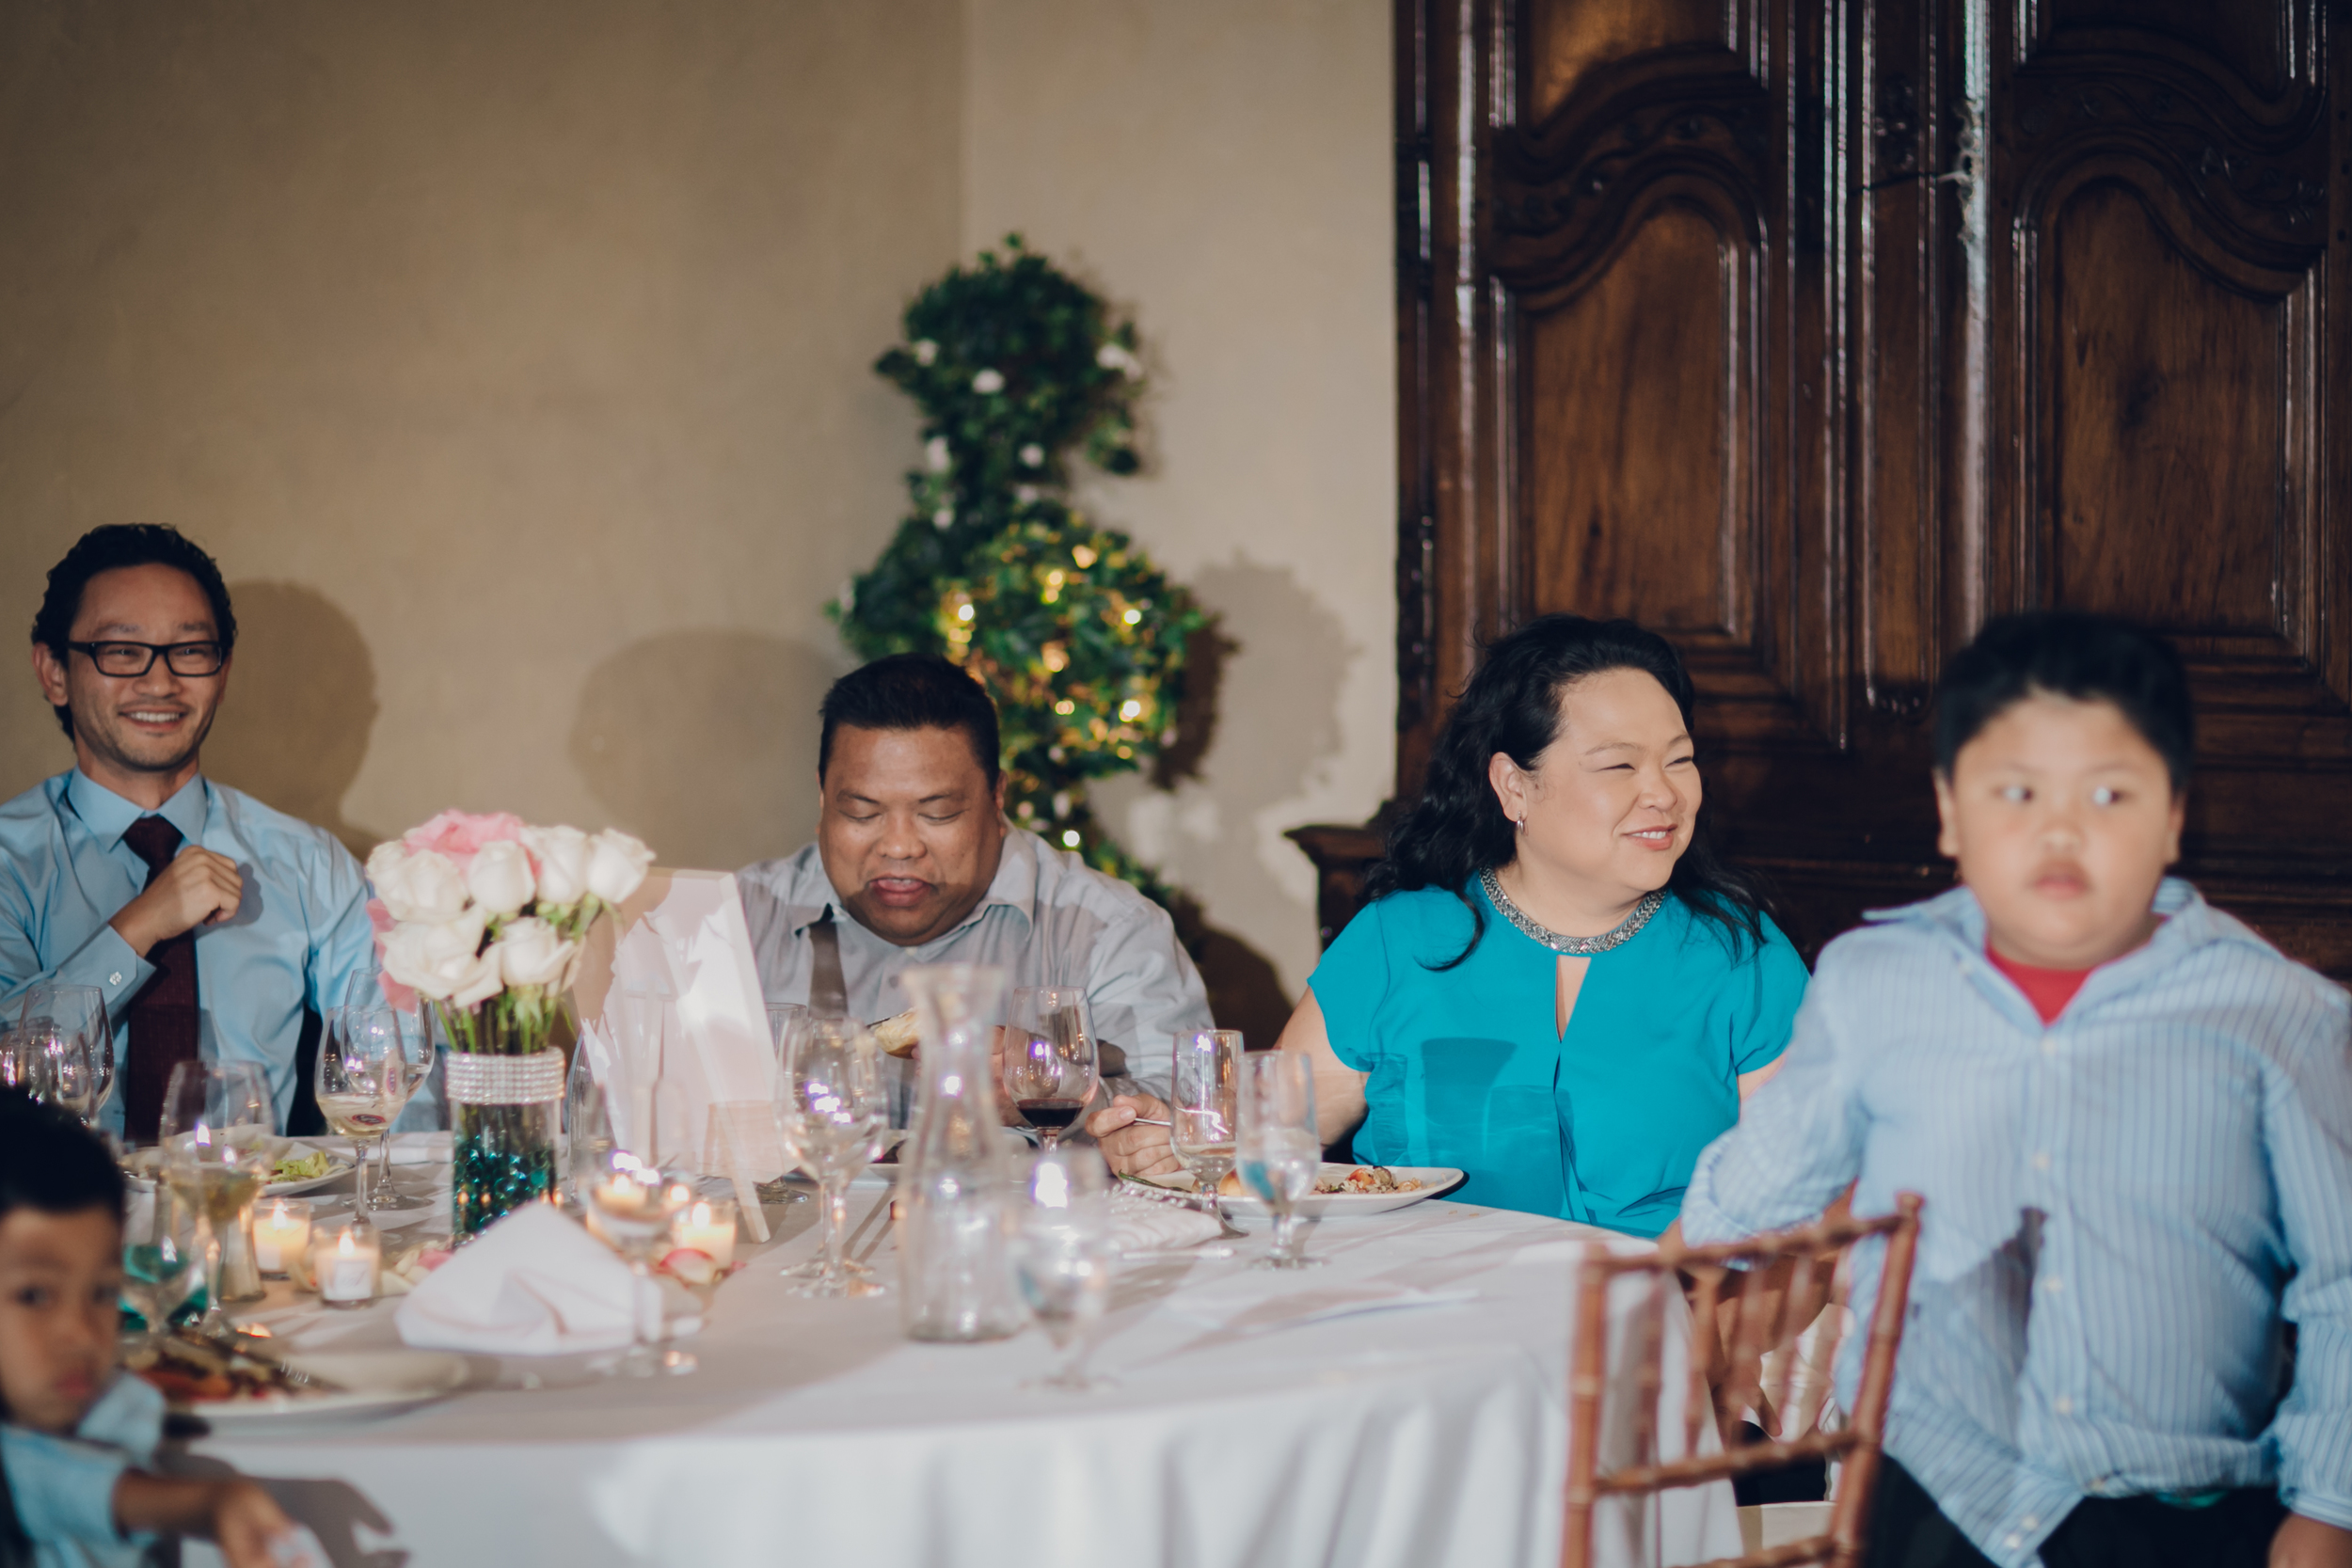 Shiela + Lester's Wedding 9-30-15 300.jpg